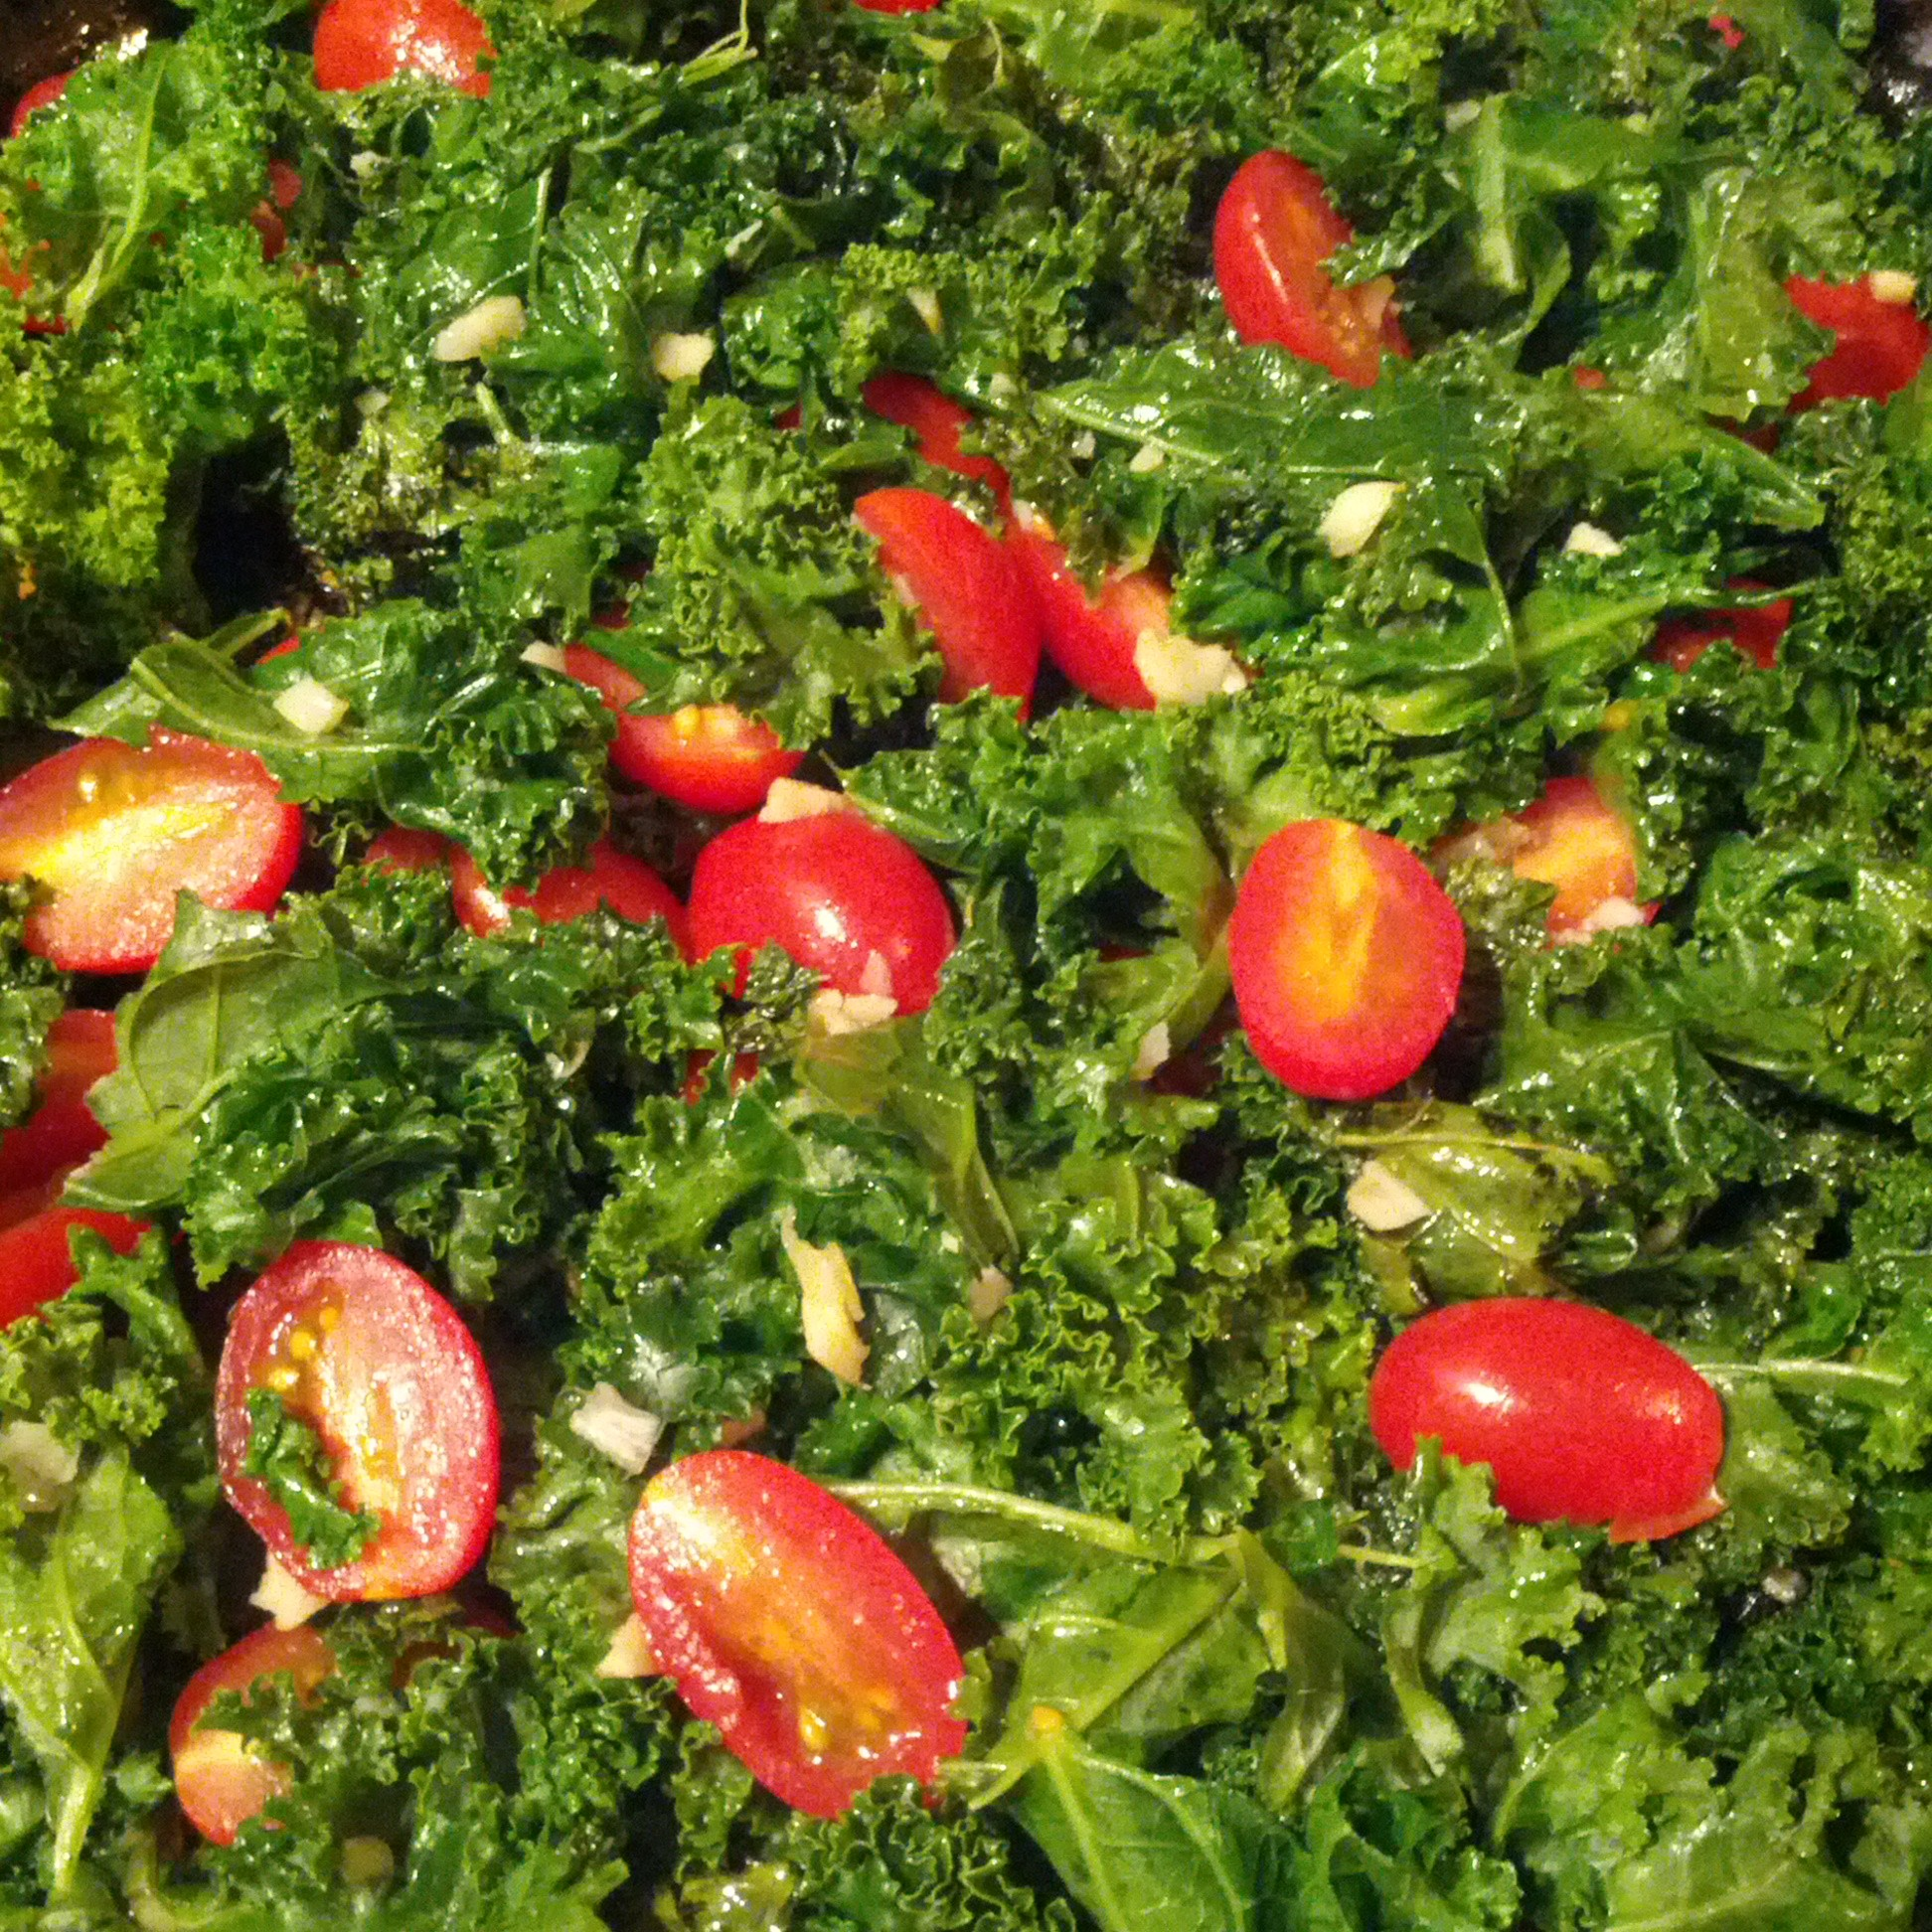 Garlic Lover's Sauteed Kale & Tomatoes